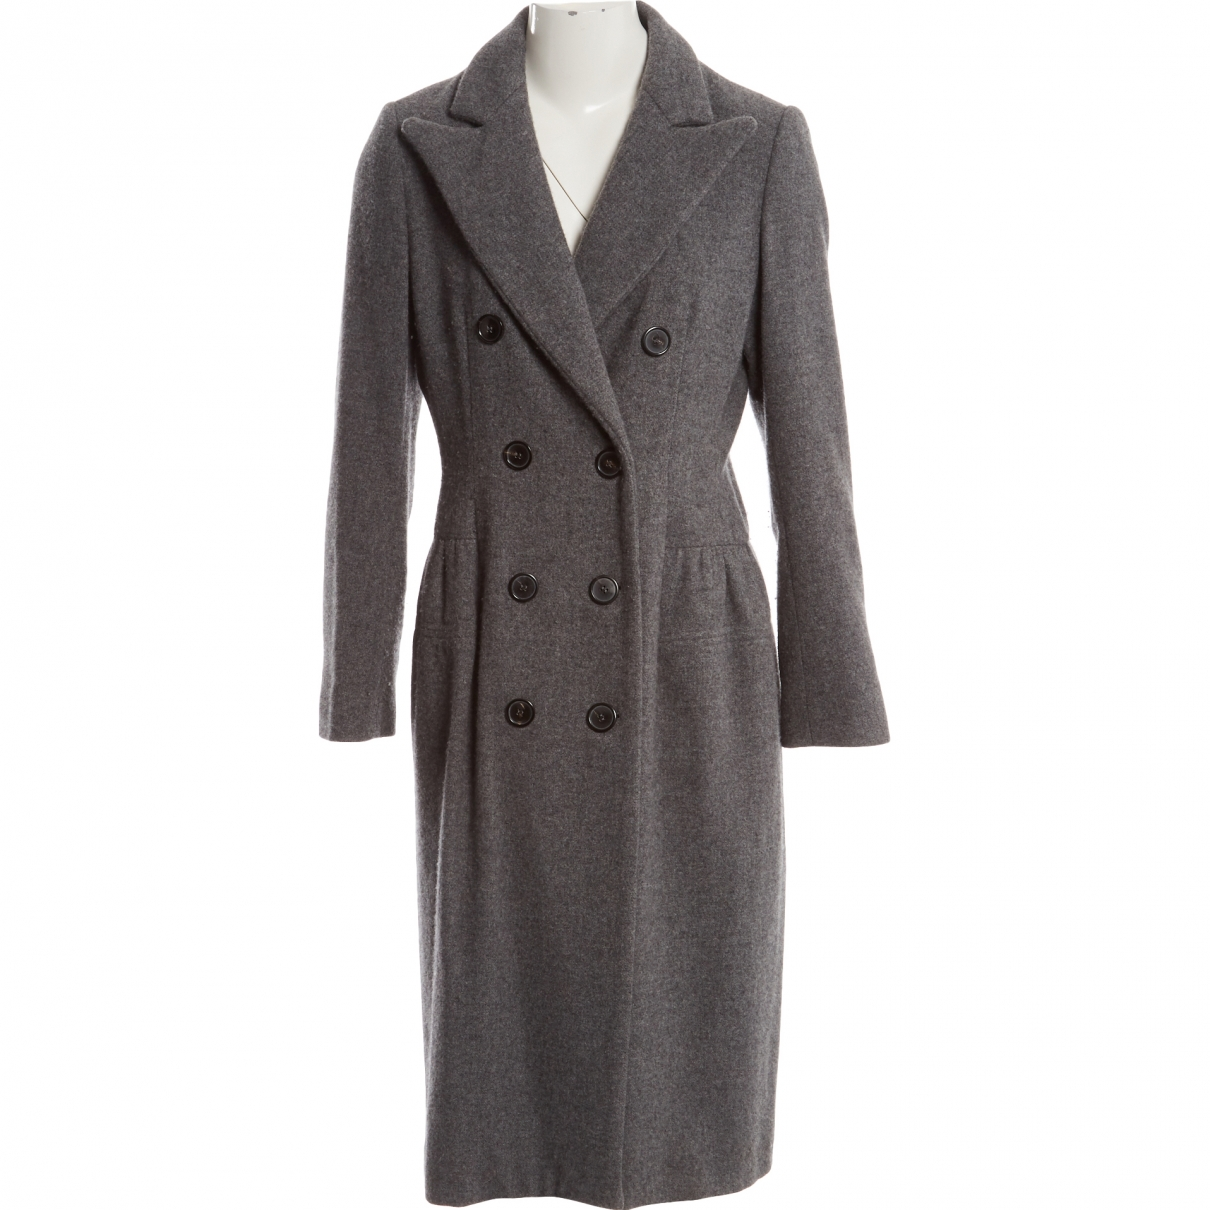 Lanvin N Grey Wool coat for Women 40 IT